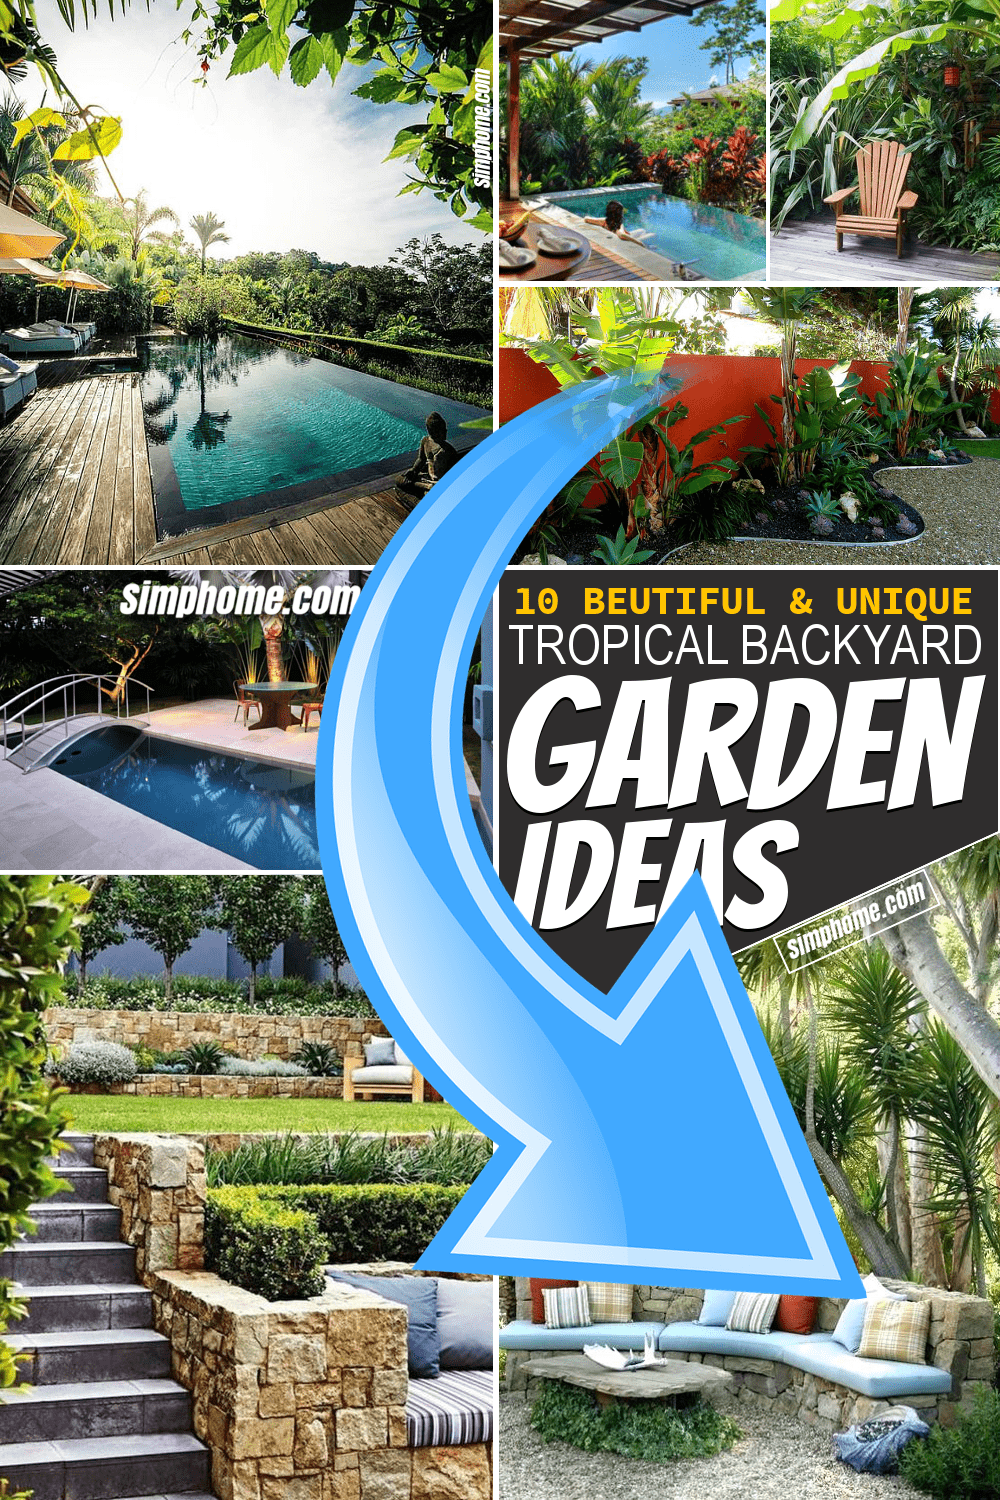 Simphome.com 10 Tropical Backyard Garden Ideas Featured Pinterest